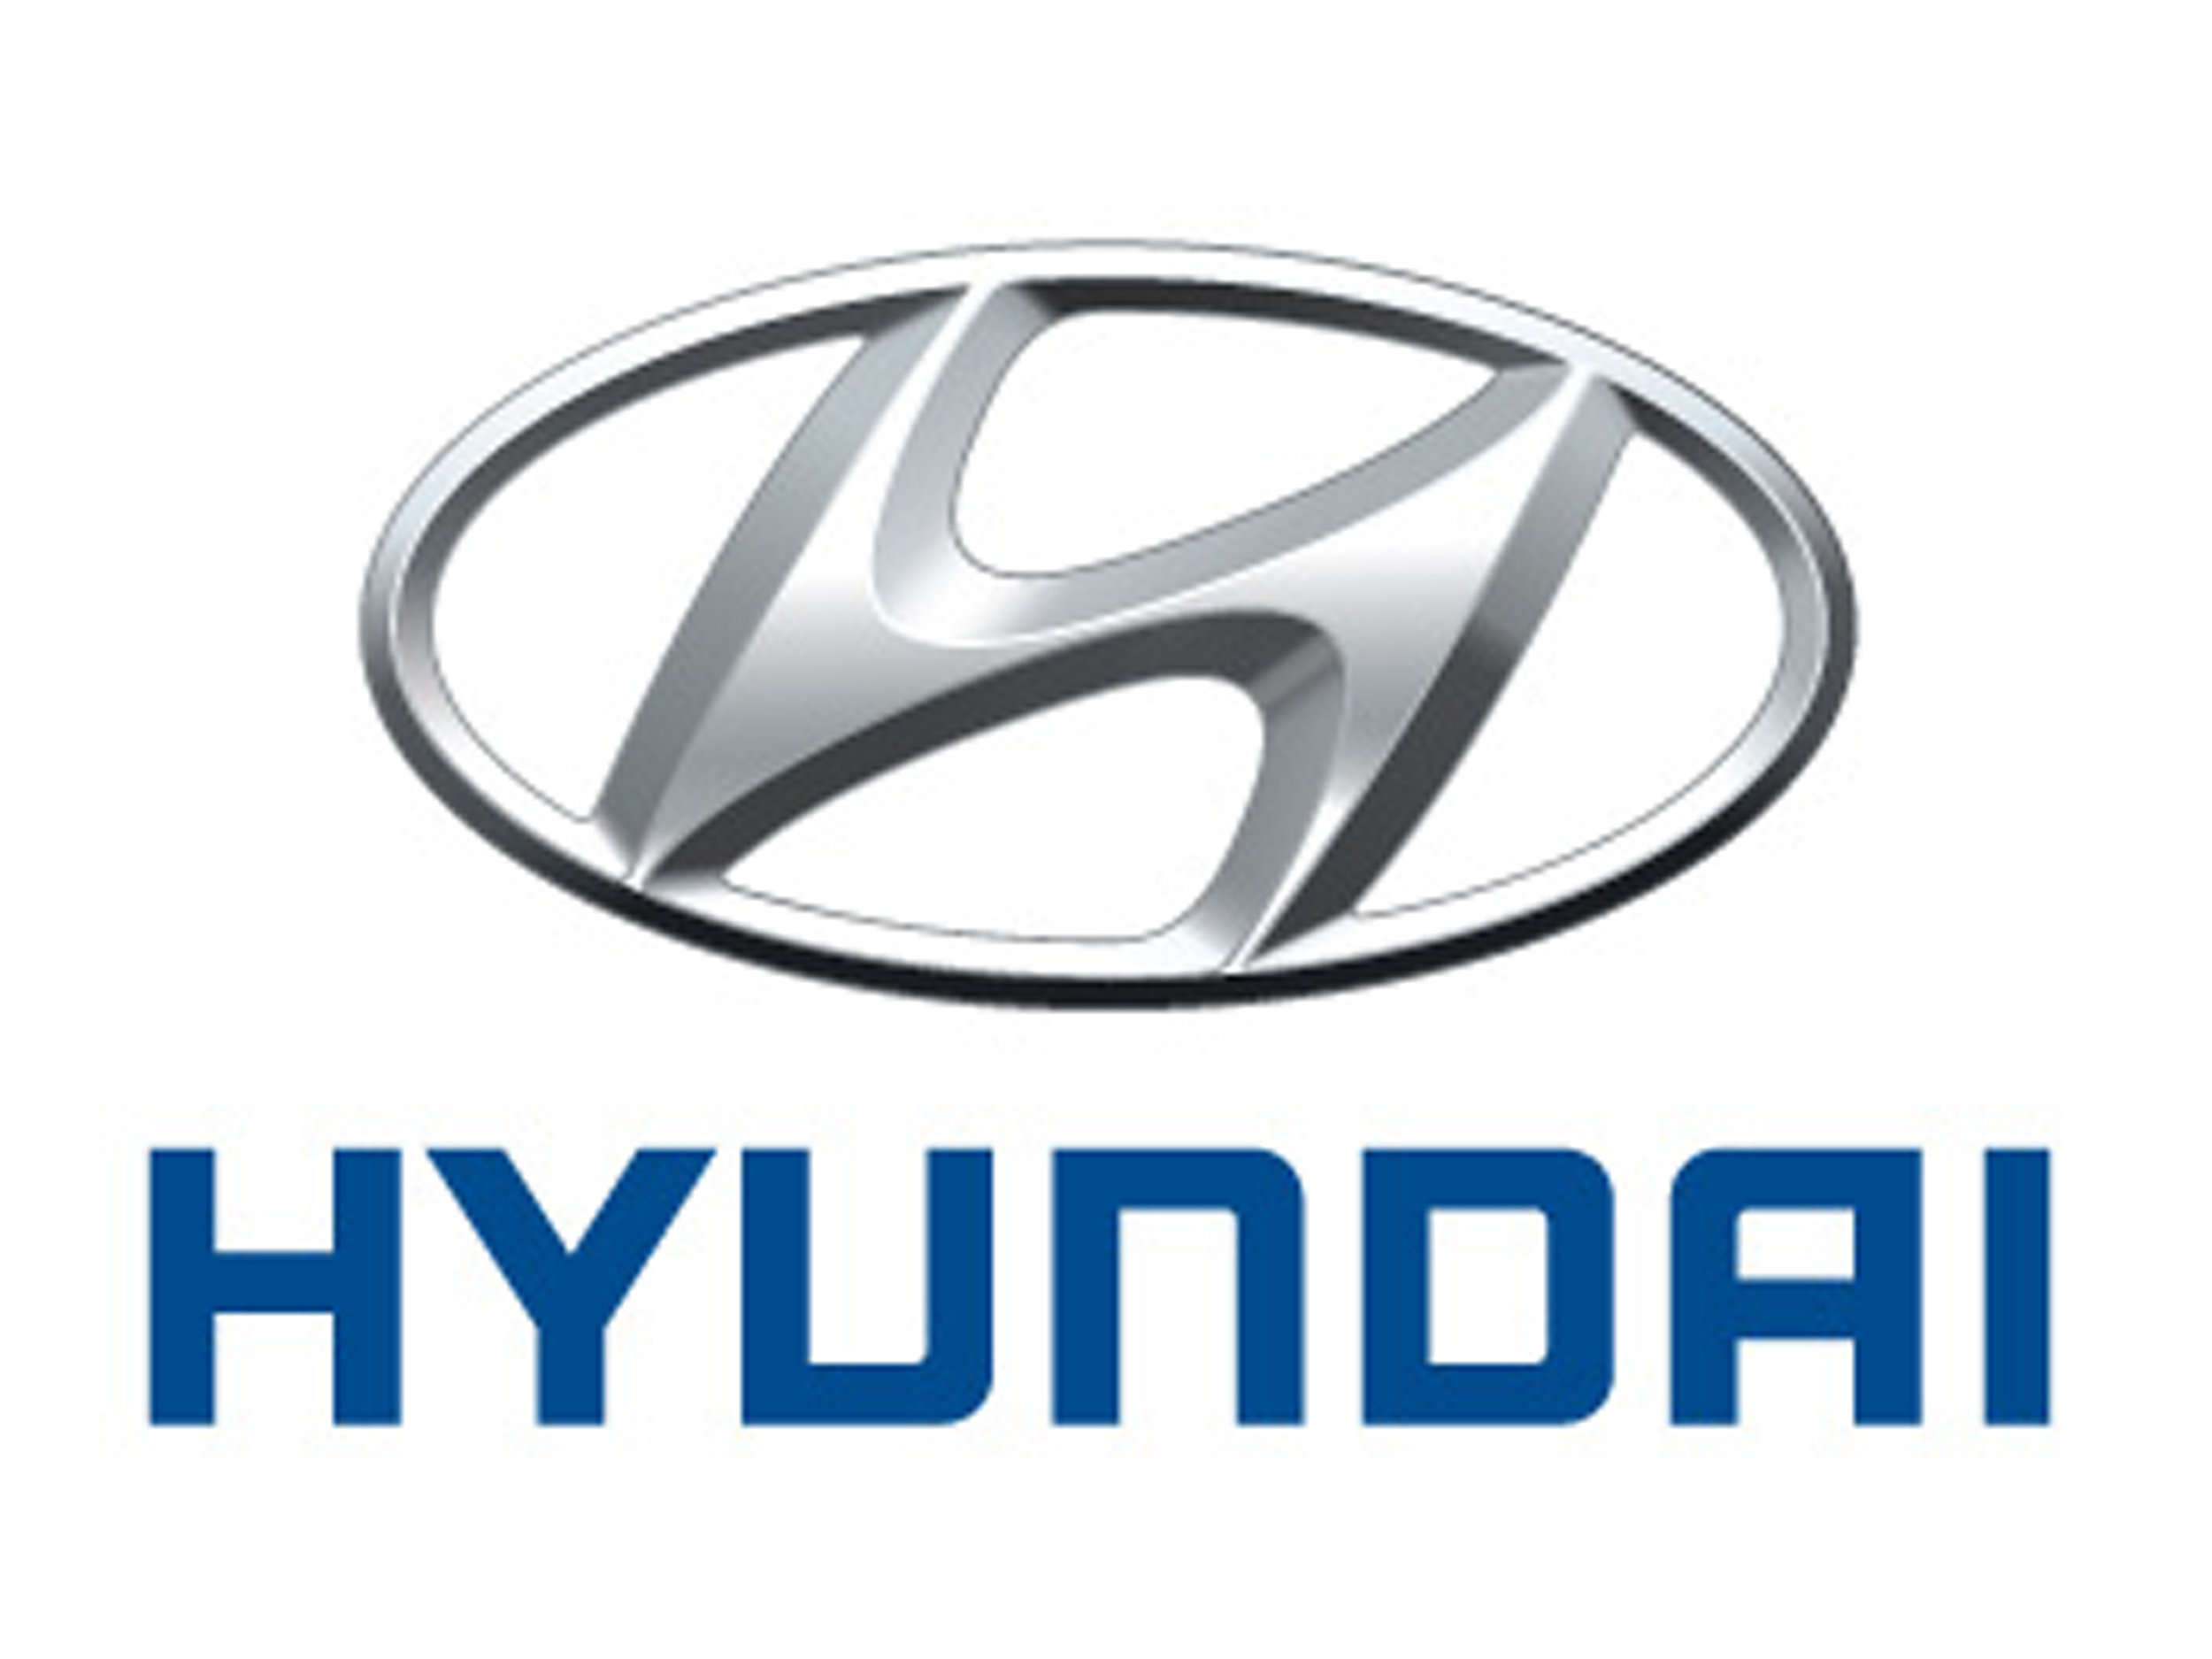 - Hyundai Power Steering Failure Class Action